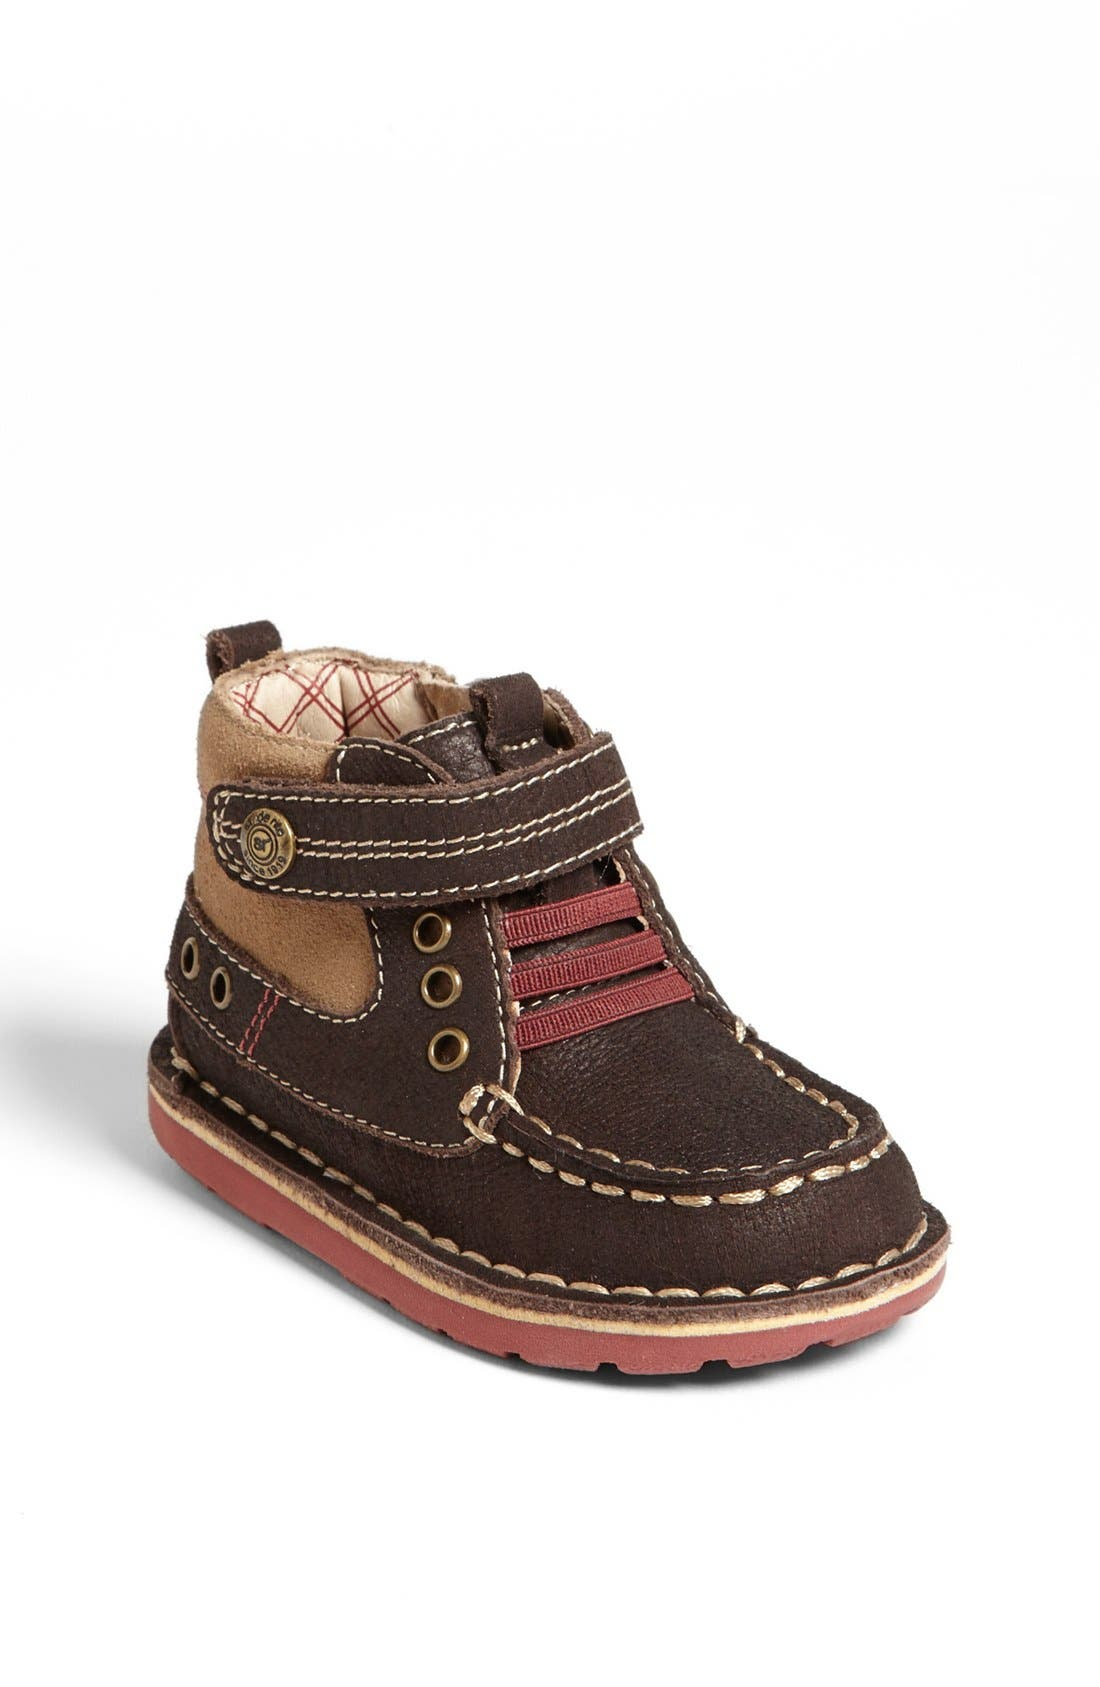 Alternate Image 1 Selected - Stride Rite 'Medallion Collection - Maxwell' Boot (Baby, Walker & Toddler)